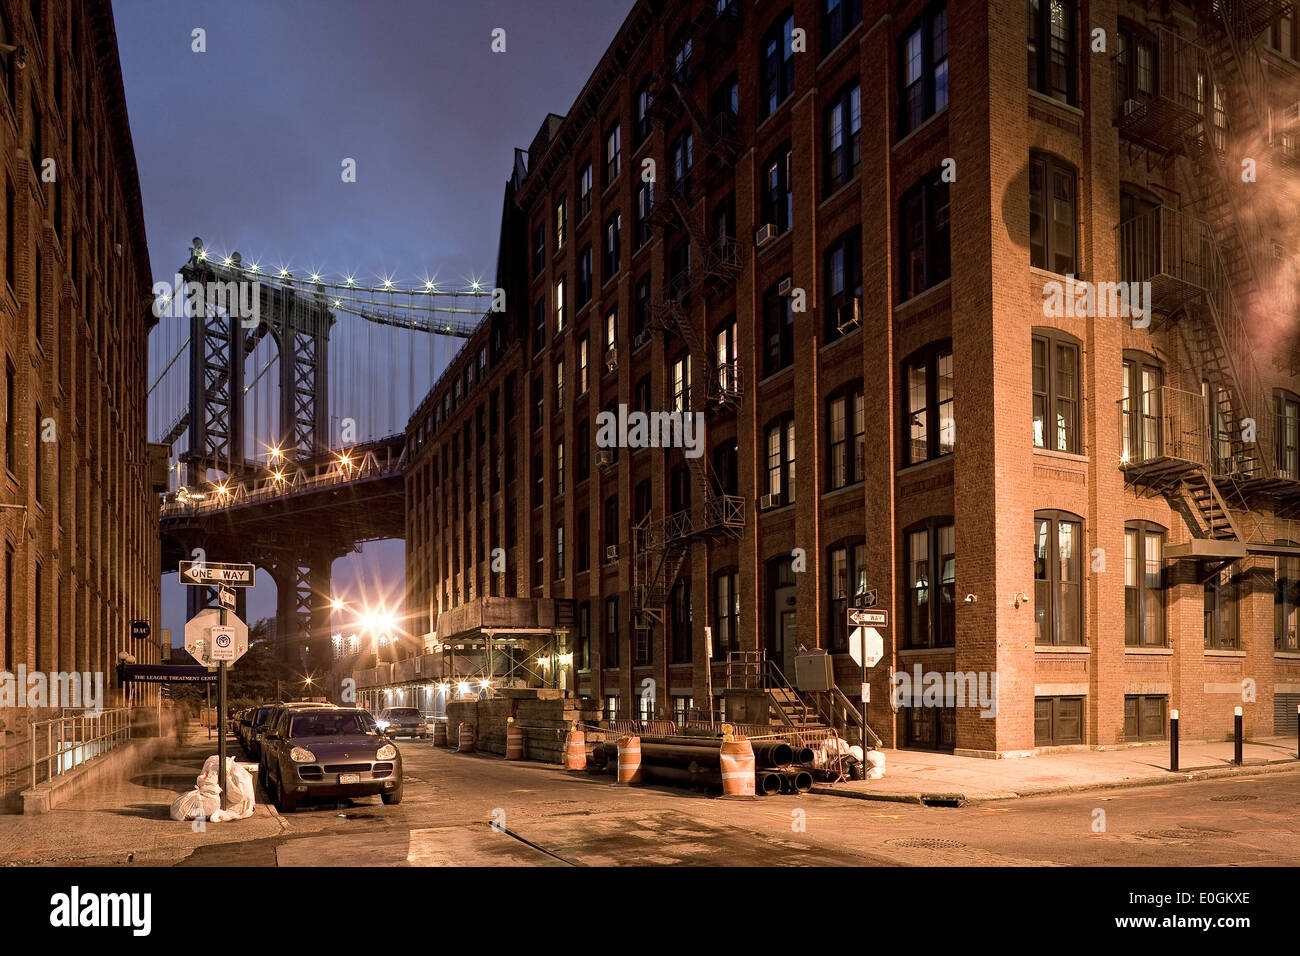 Manhattan Bridge, connects the New York City boroughs of Manhattan and Brooklyn by spanning the East River, New York, New York C - Stock Image